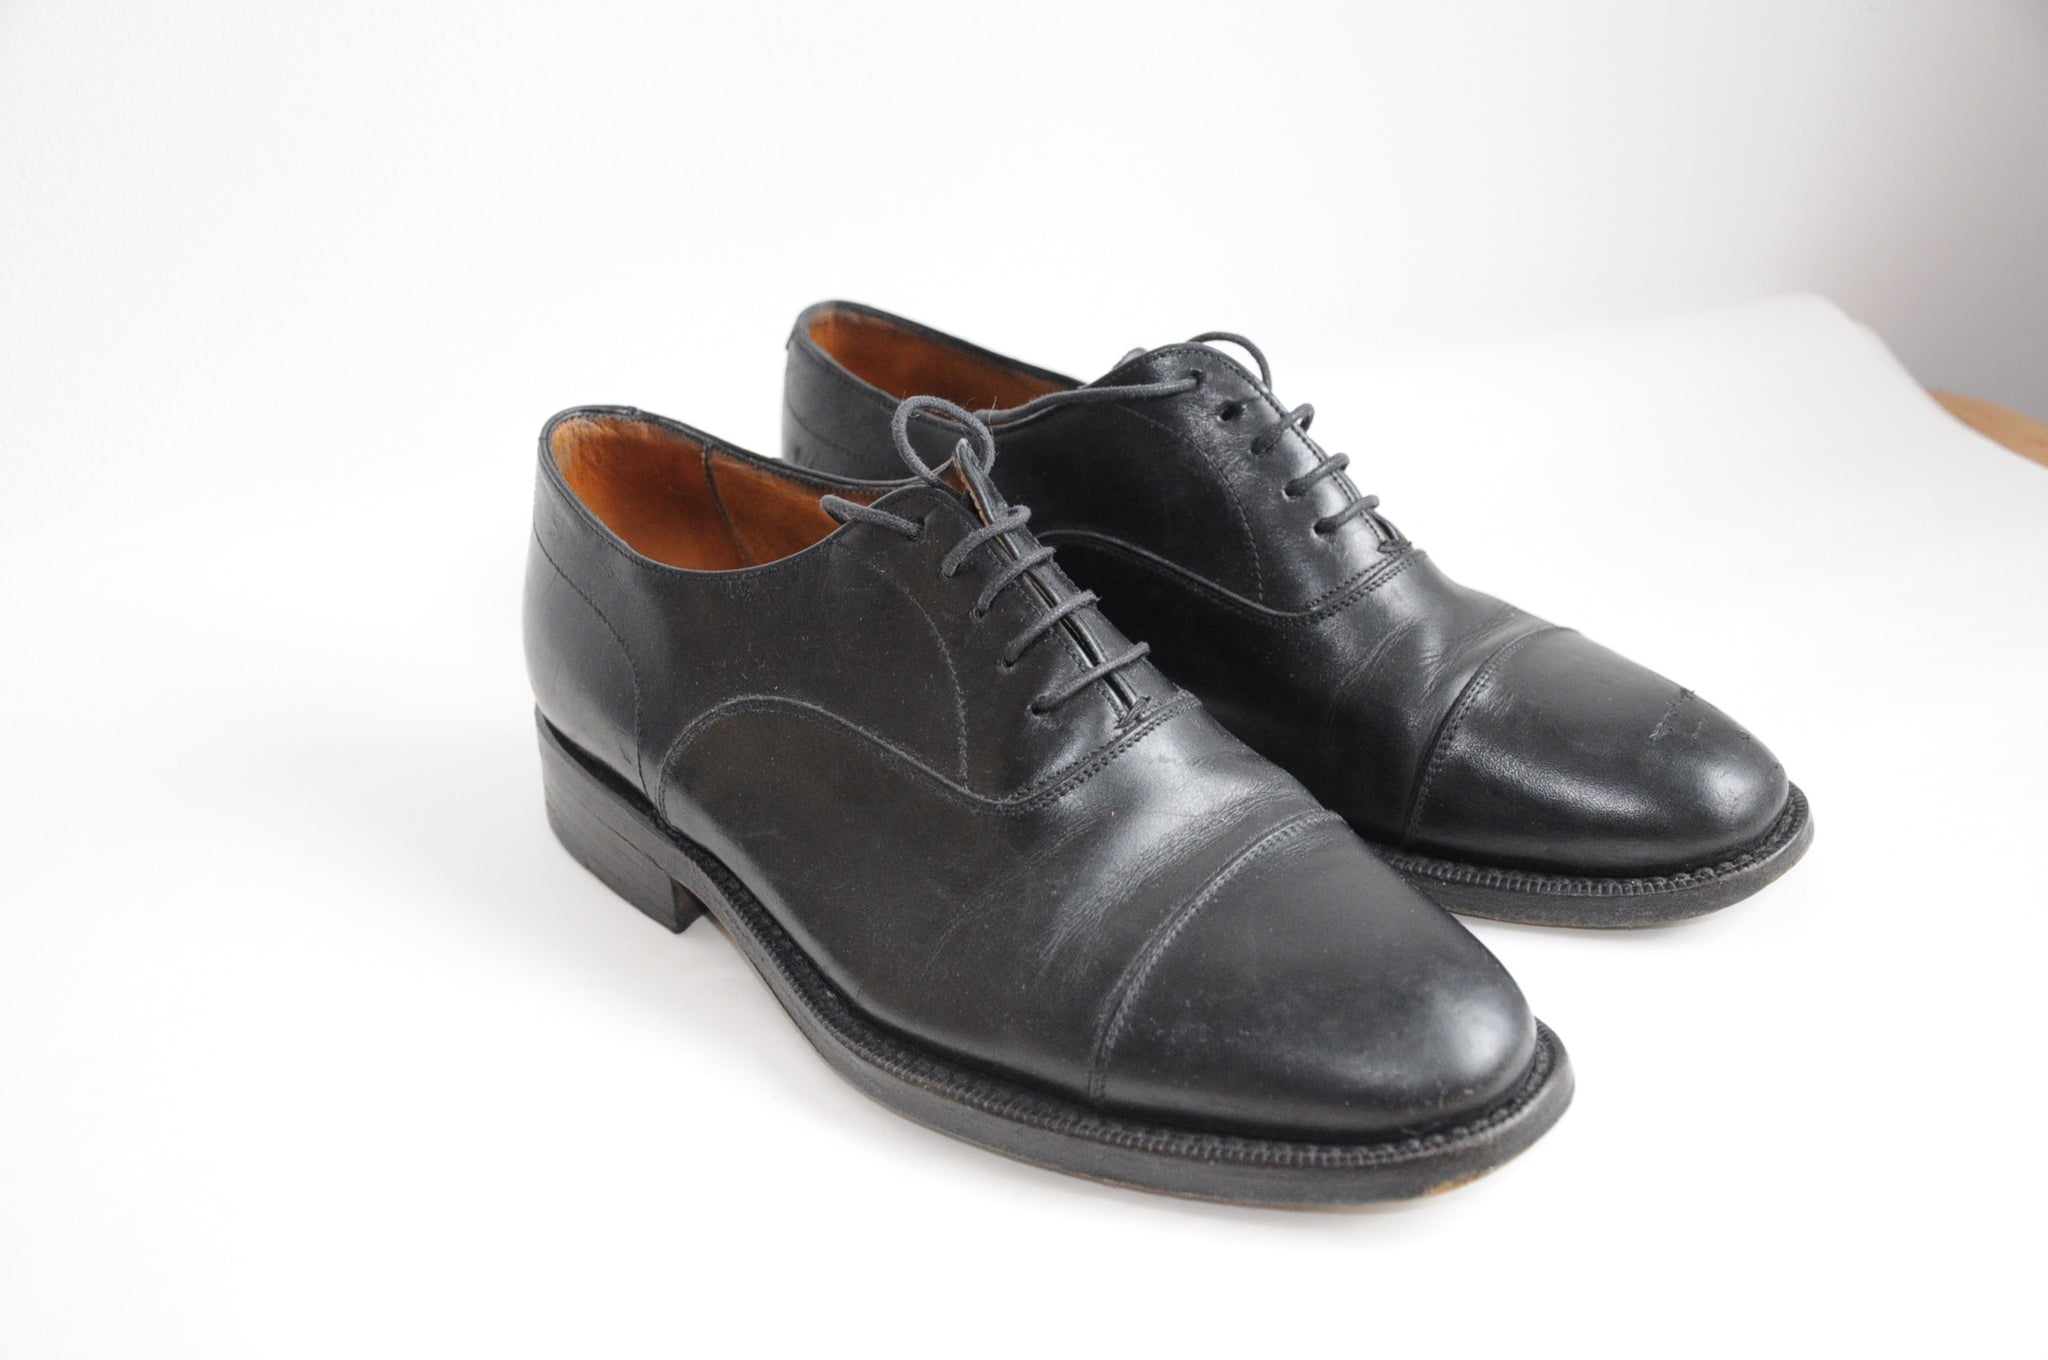 Oxford leather shoes / EU 37